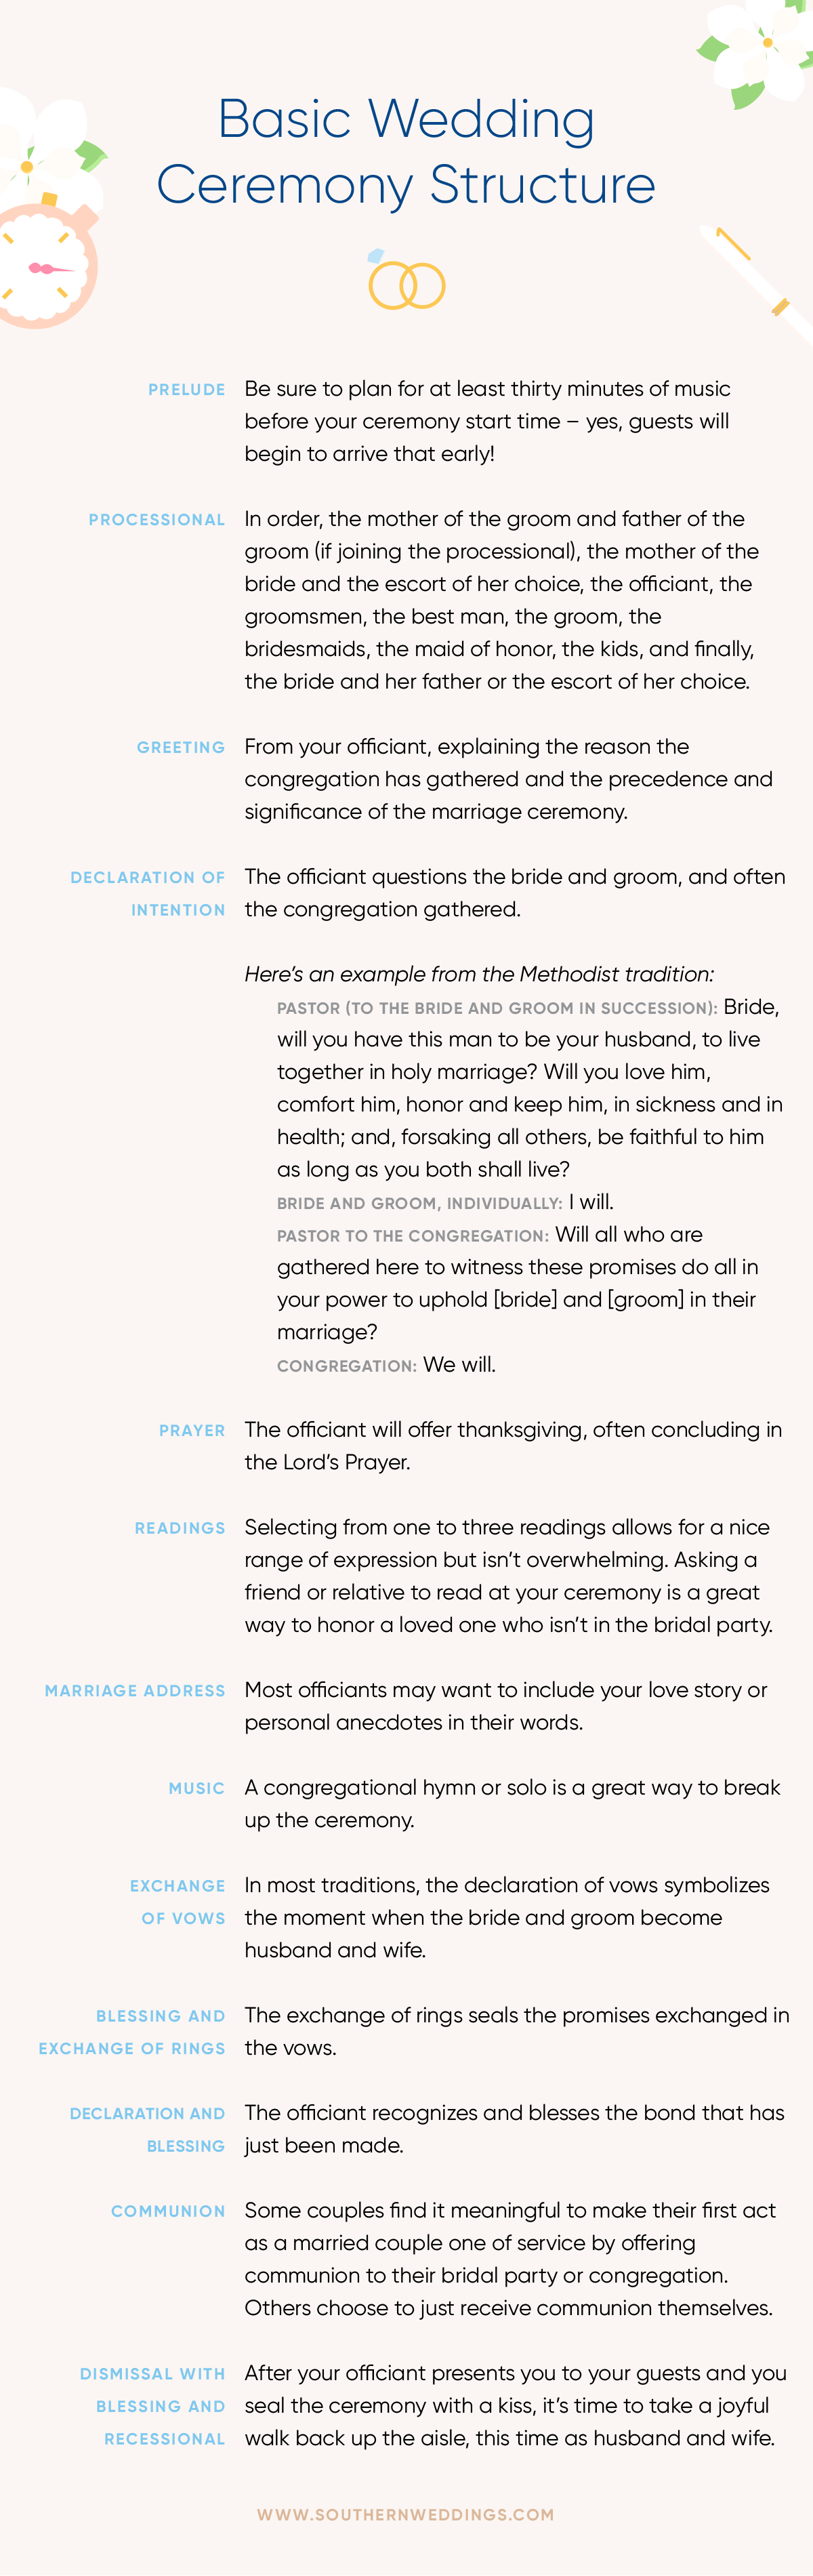 The Basic Wedding Ceremony Structure